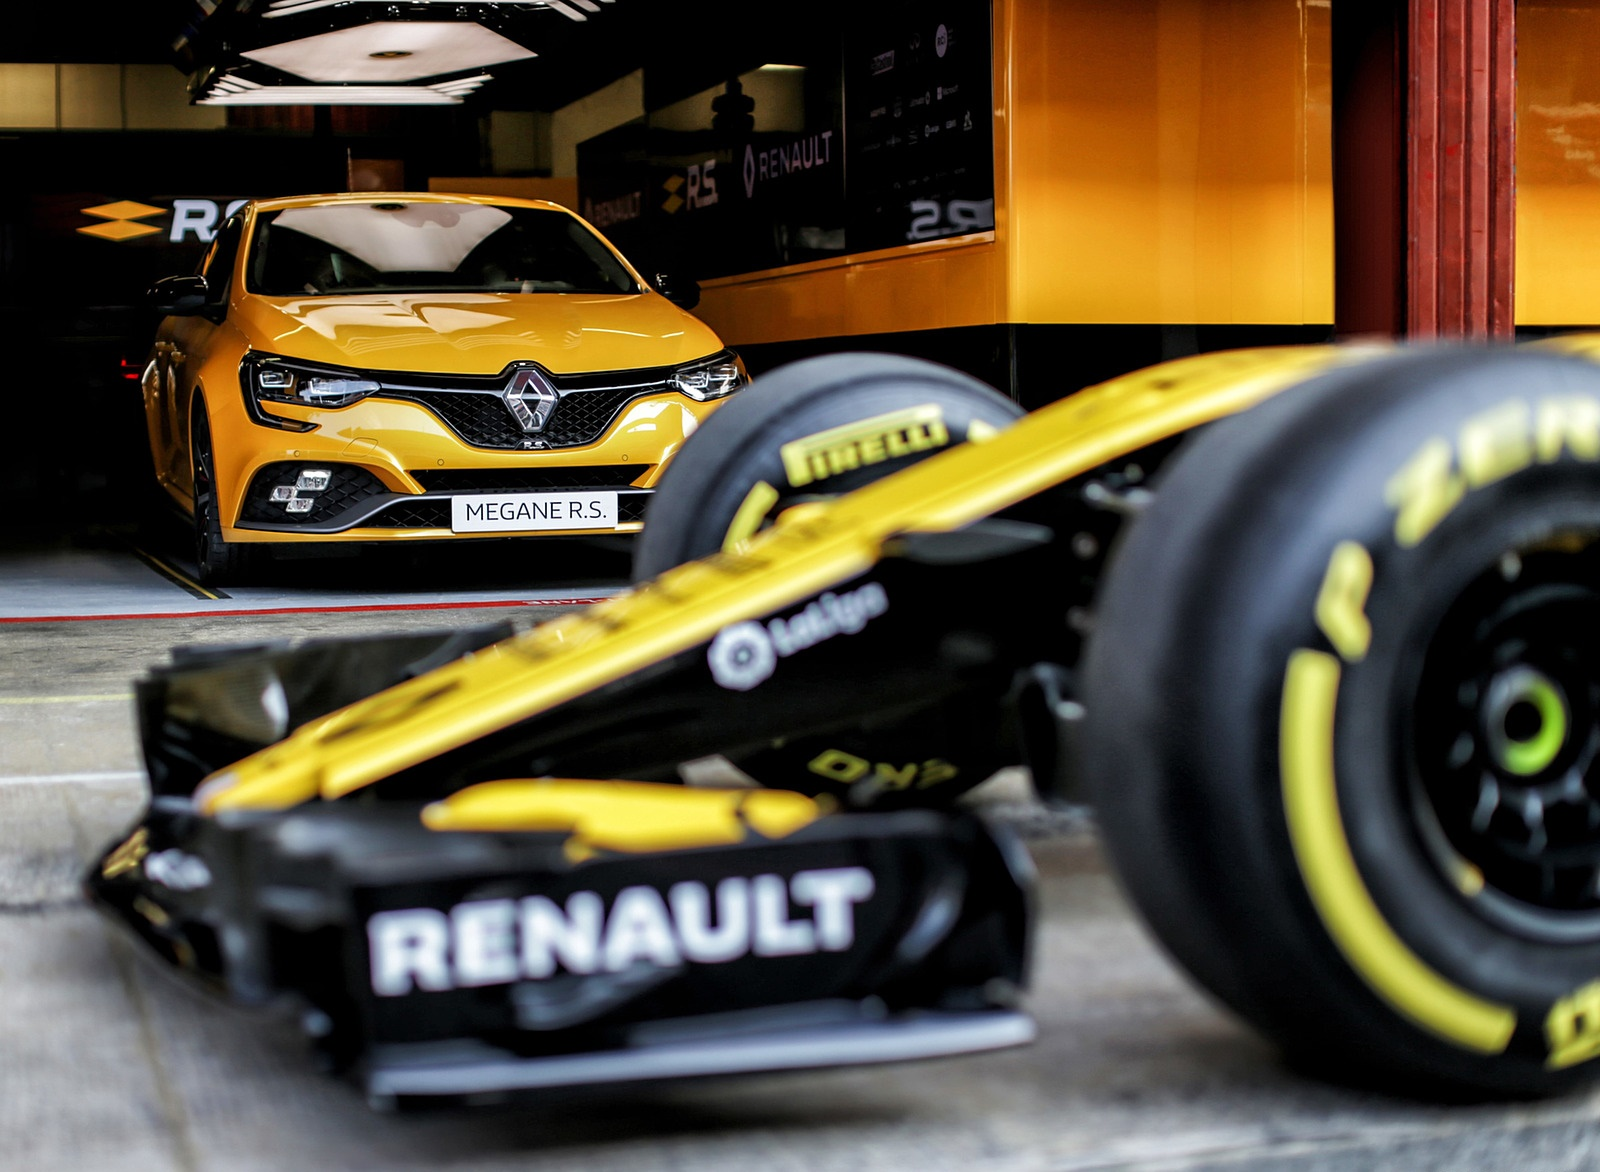 2019 Renault Megane R.S. Trophy and Renault R.S. 18 Single Seater Front Wallpapers (9)